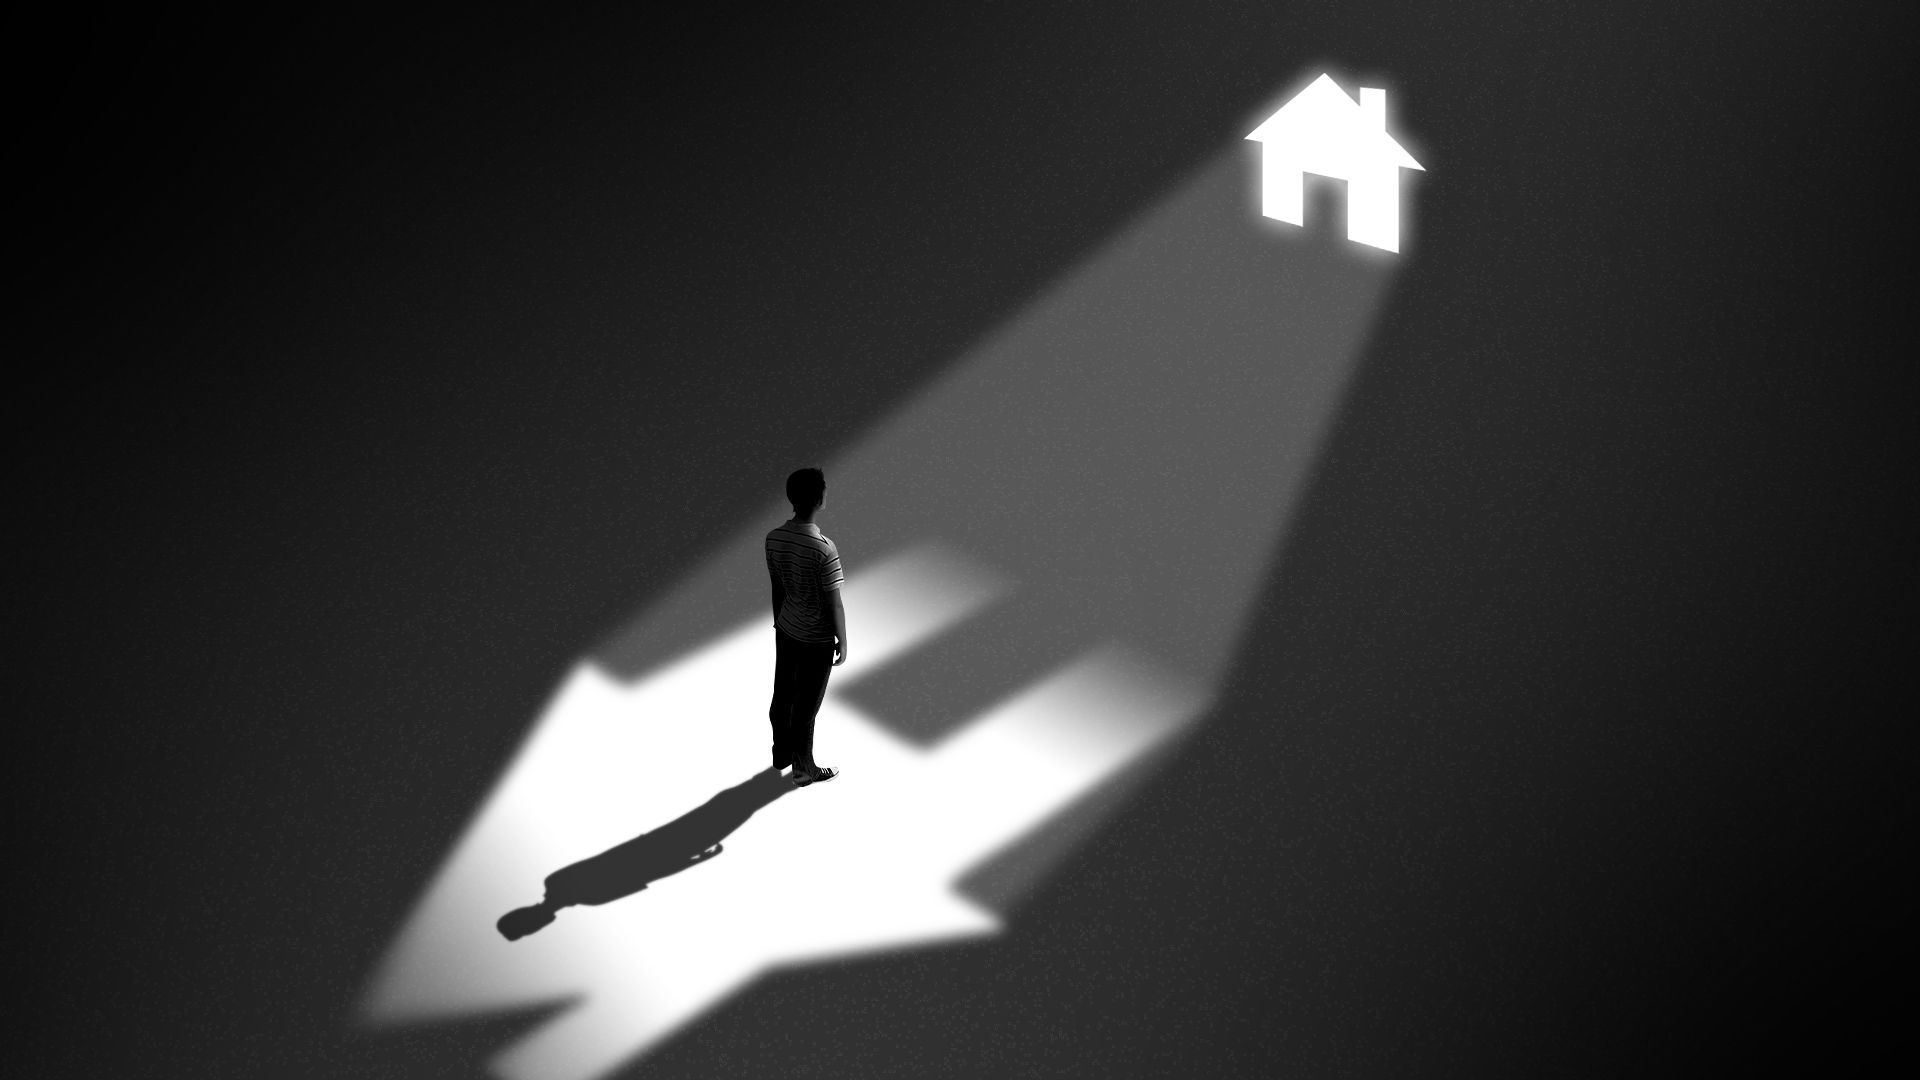 Illustration of a man standing in a dark cell looking up towards a tiny window in the shape of a house casting light inside his cell.